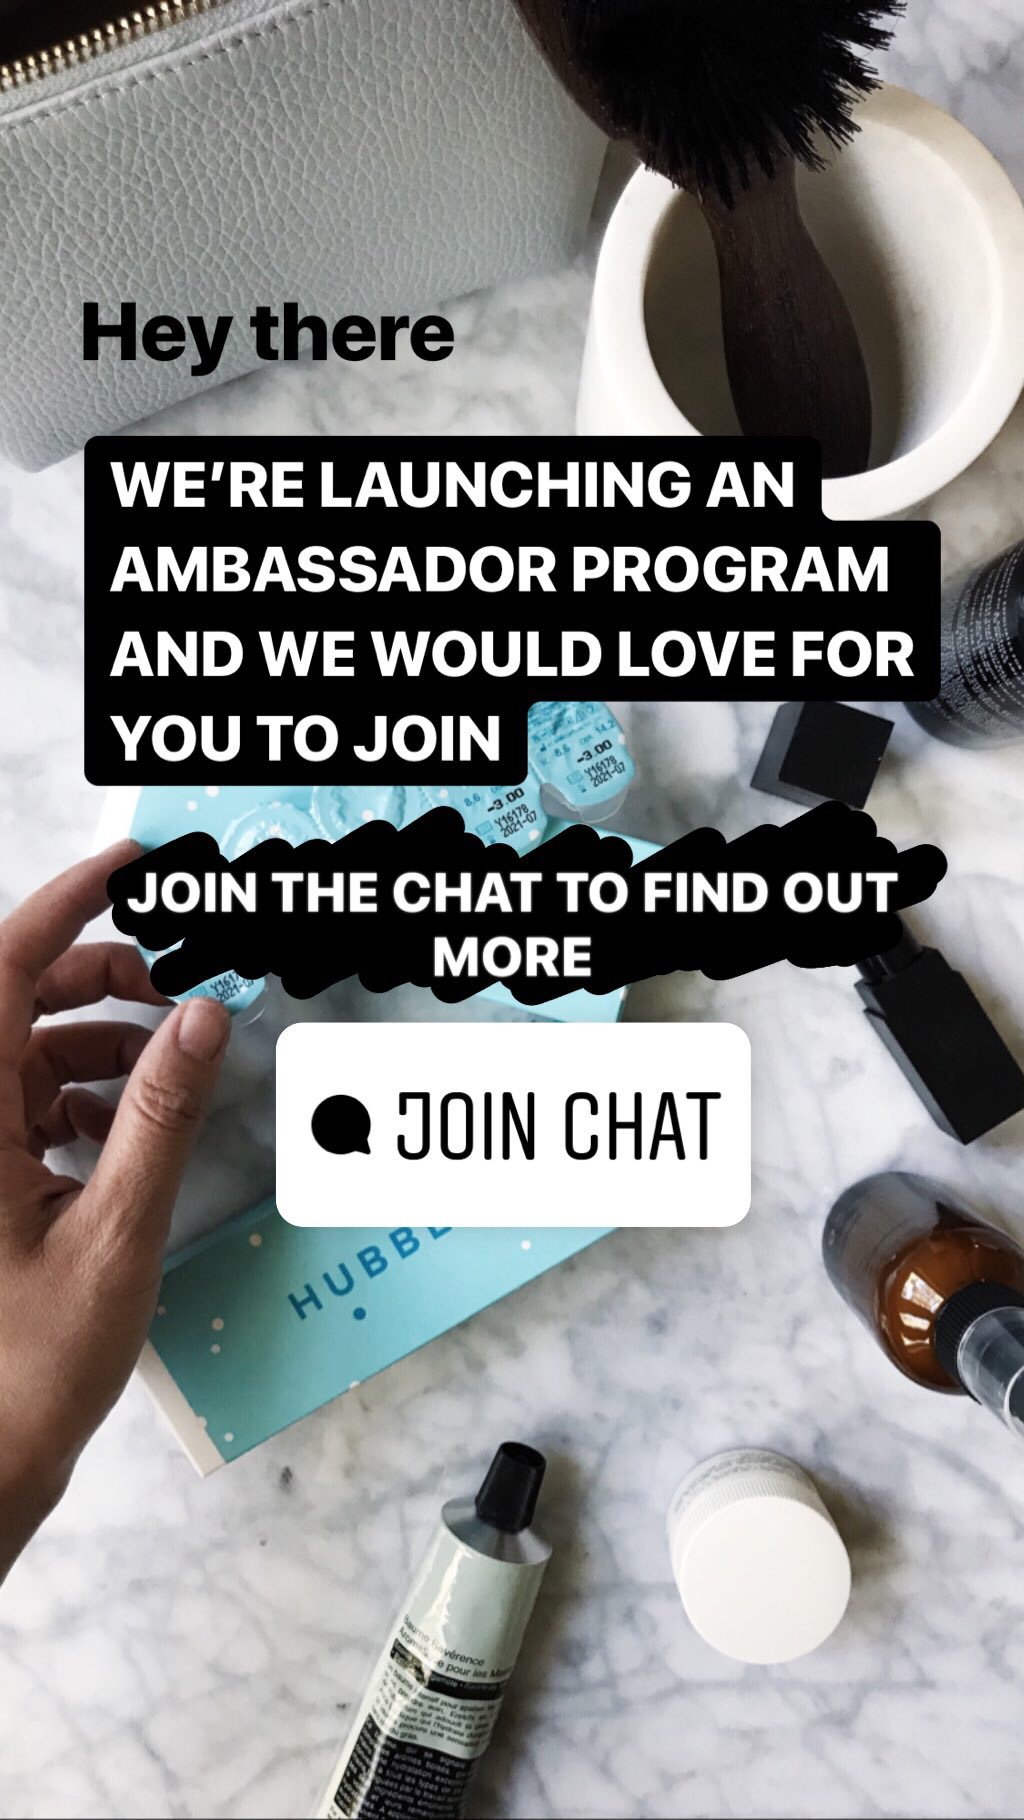 Reach out to ambassadors.